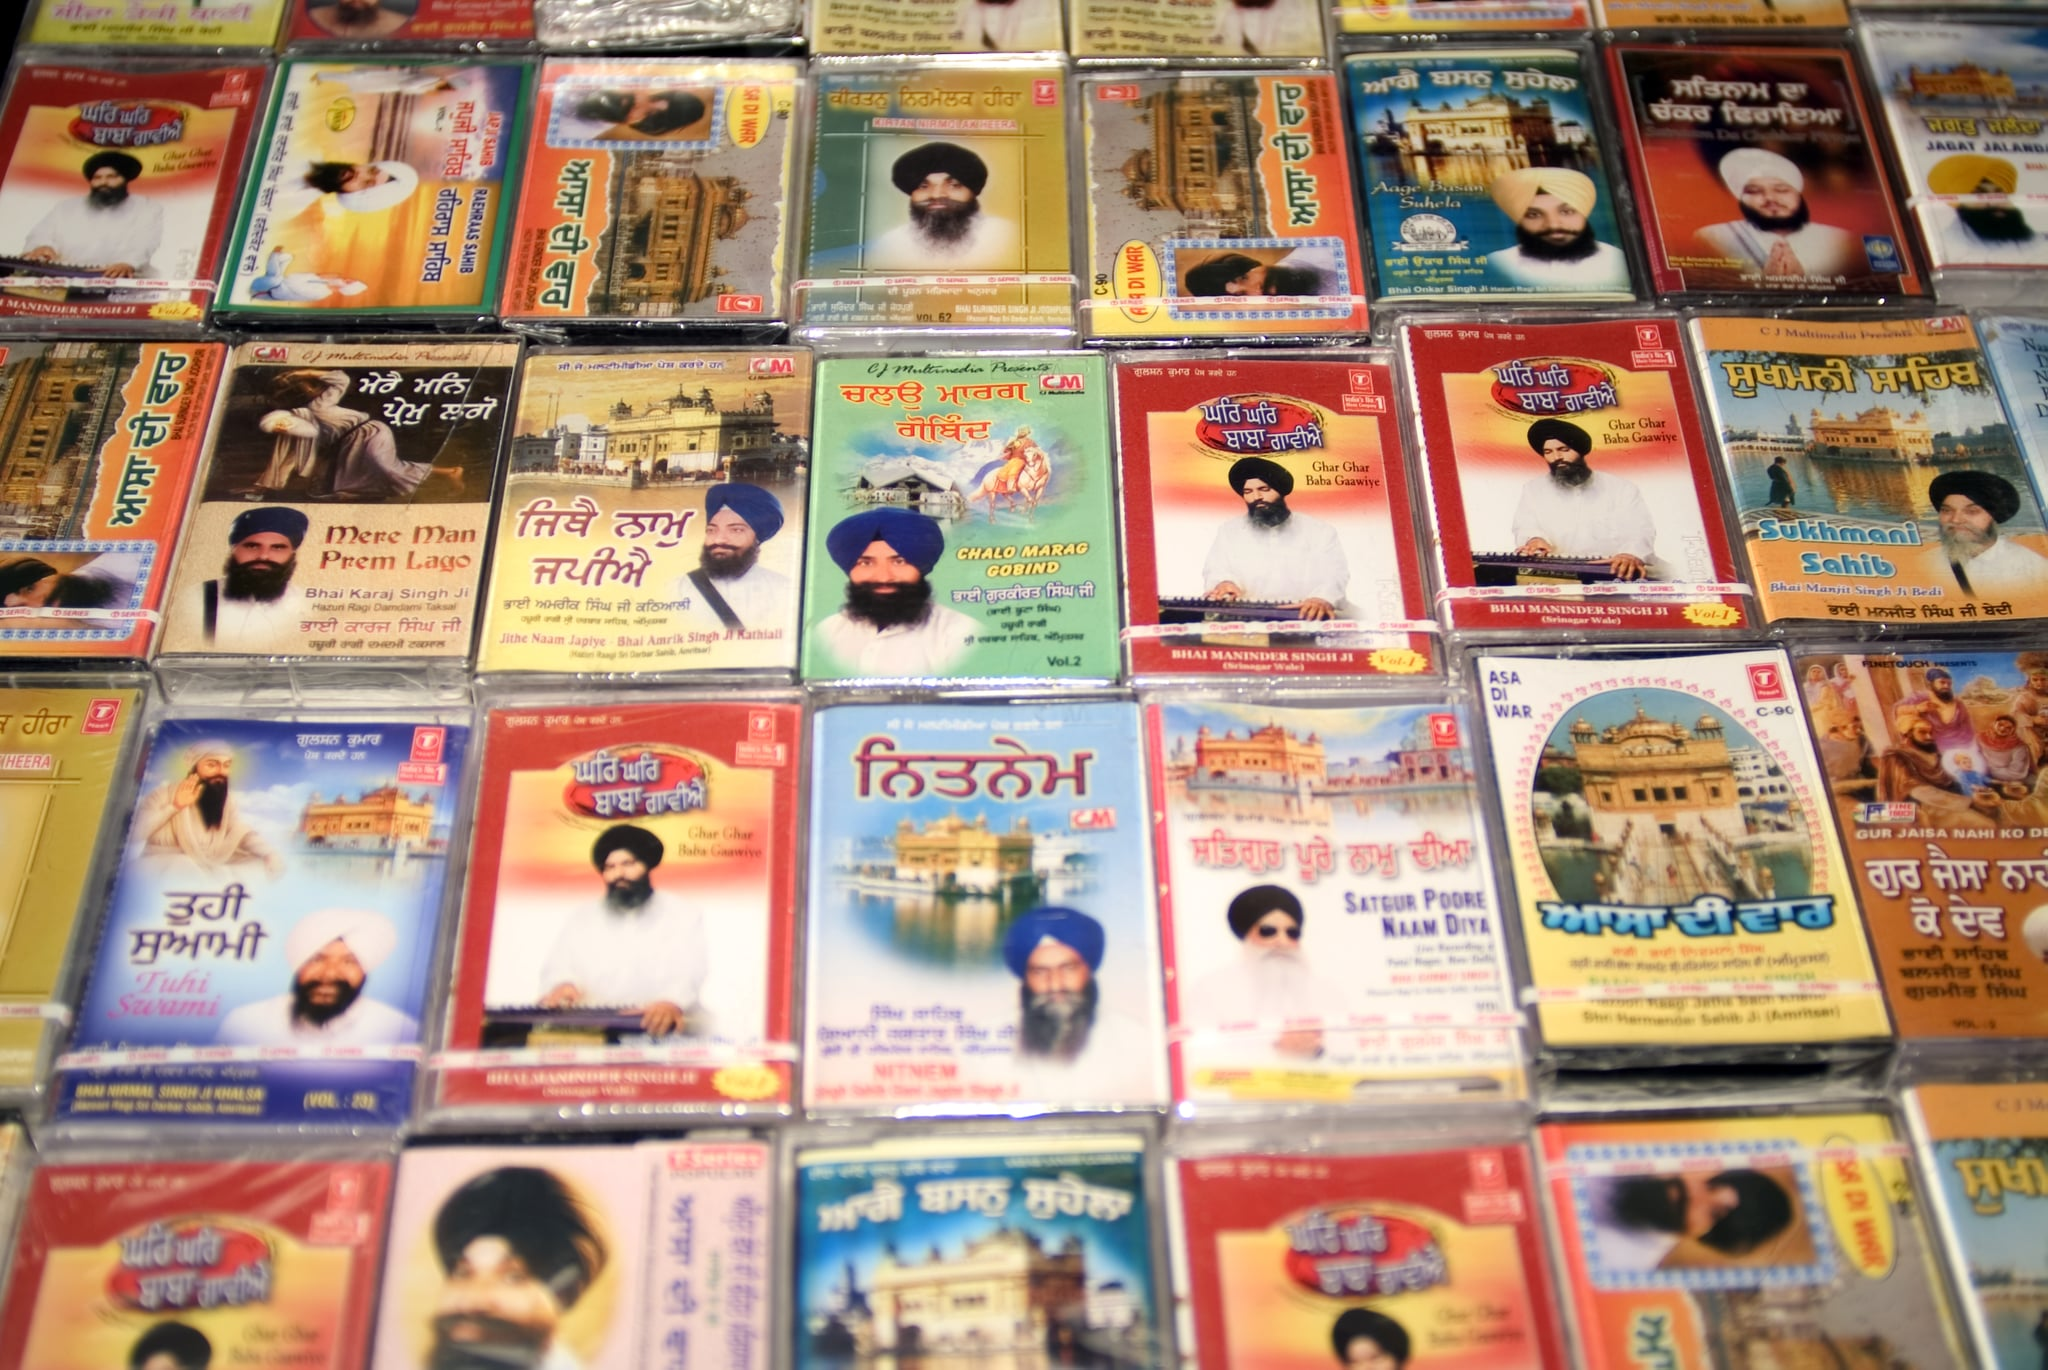 Punjabi music cassette tapes on sale in Sikh temple or Gurdwara Sri Guru Singh Sabha Hounslow UK. (Photo by: Photofusion/Universal Images Group via Getty Images)